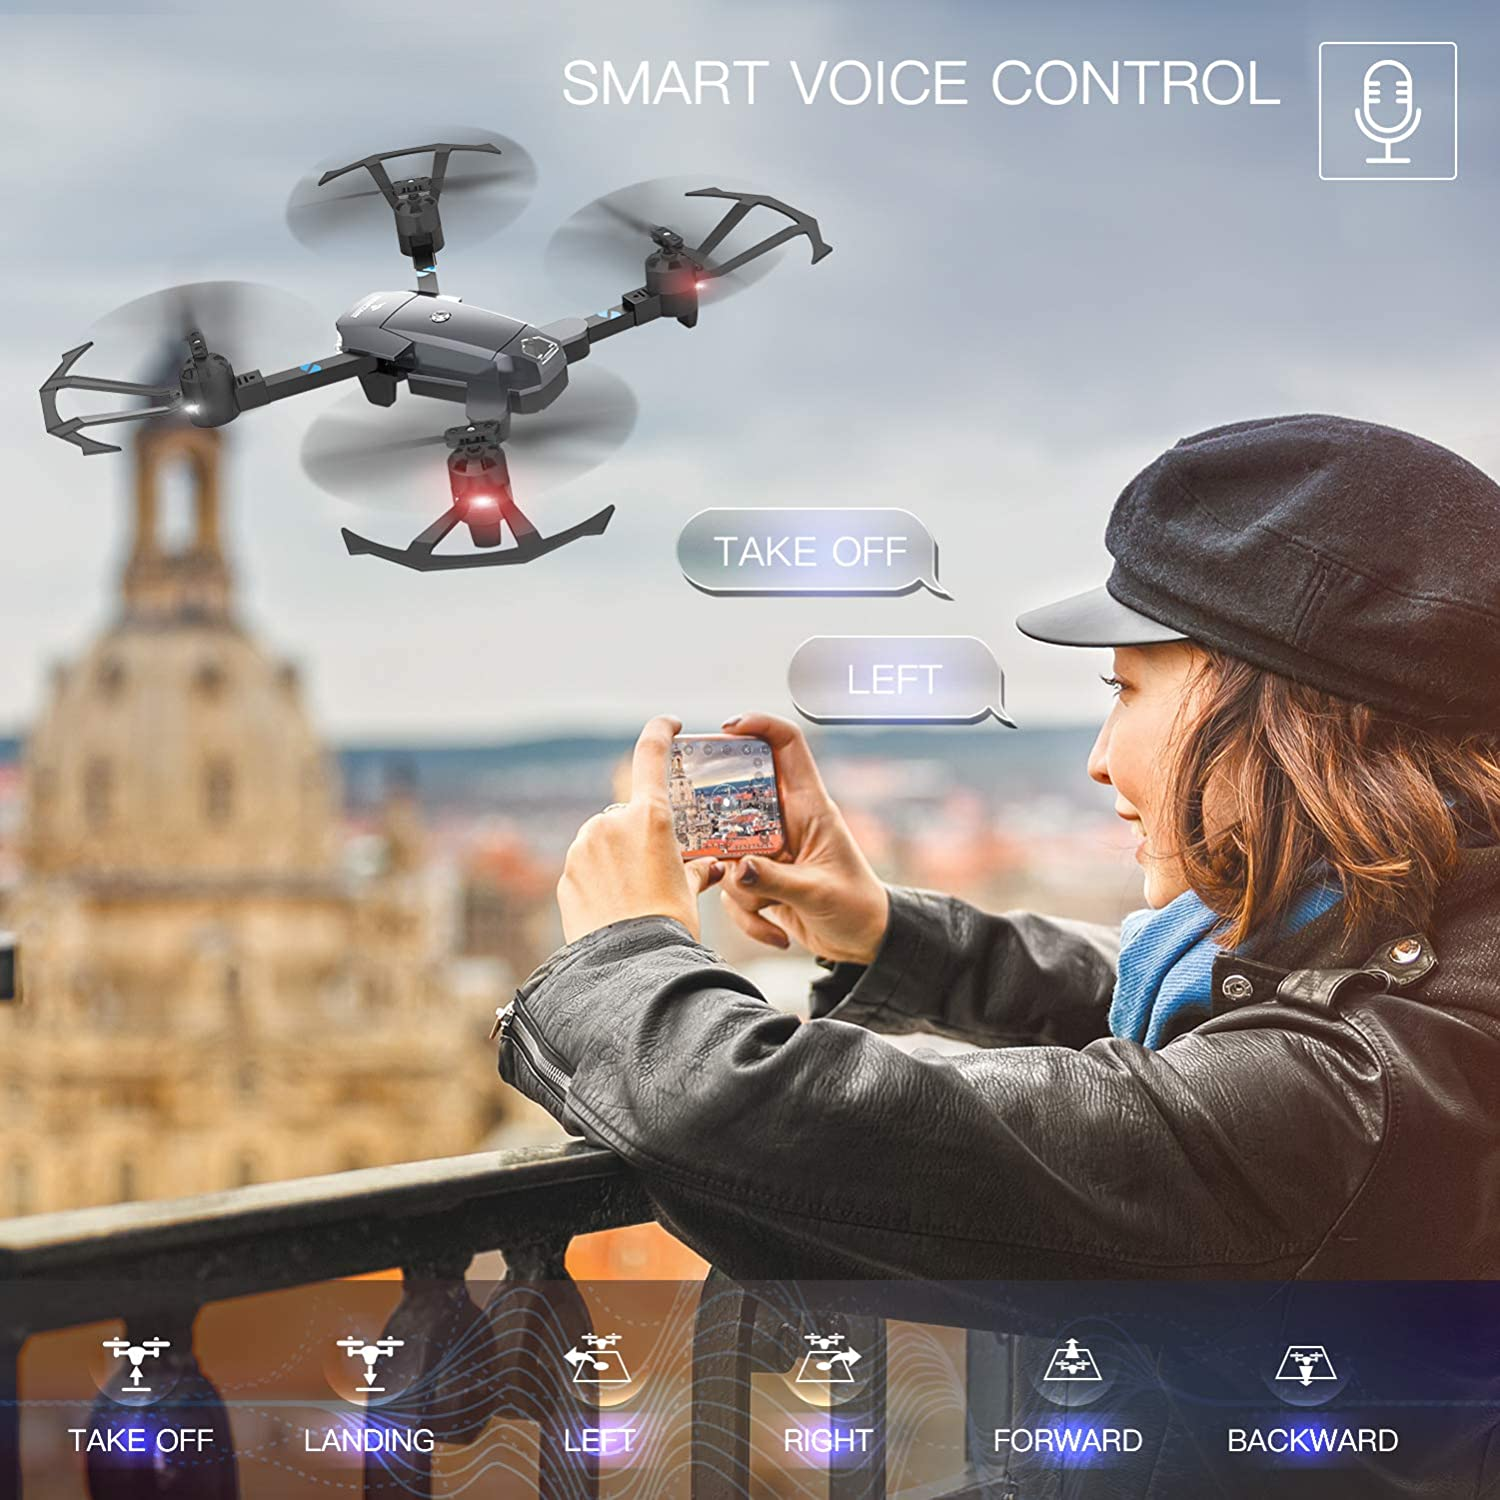 snaptain a15 foldable voice controlled drone review about voice command feature